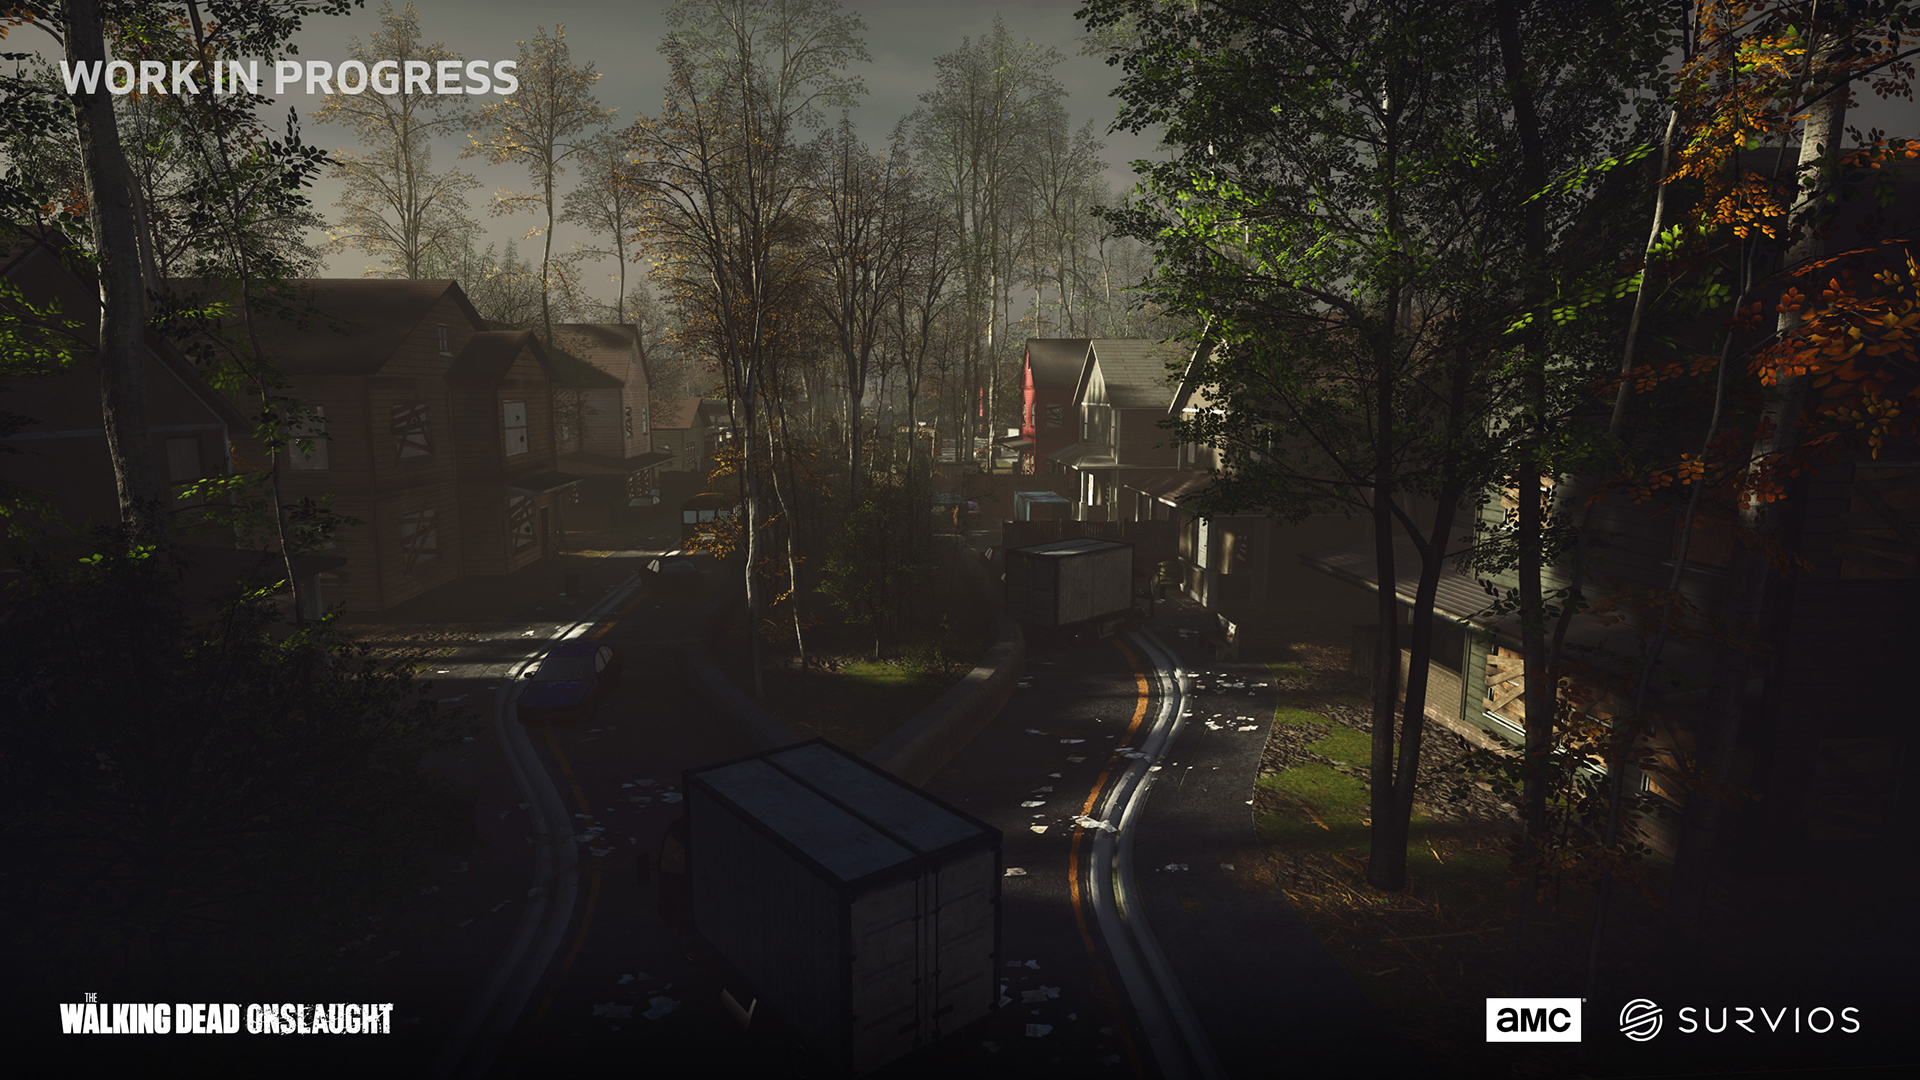 The Walking Dead Onslaught game screenshot